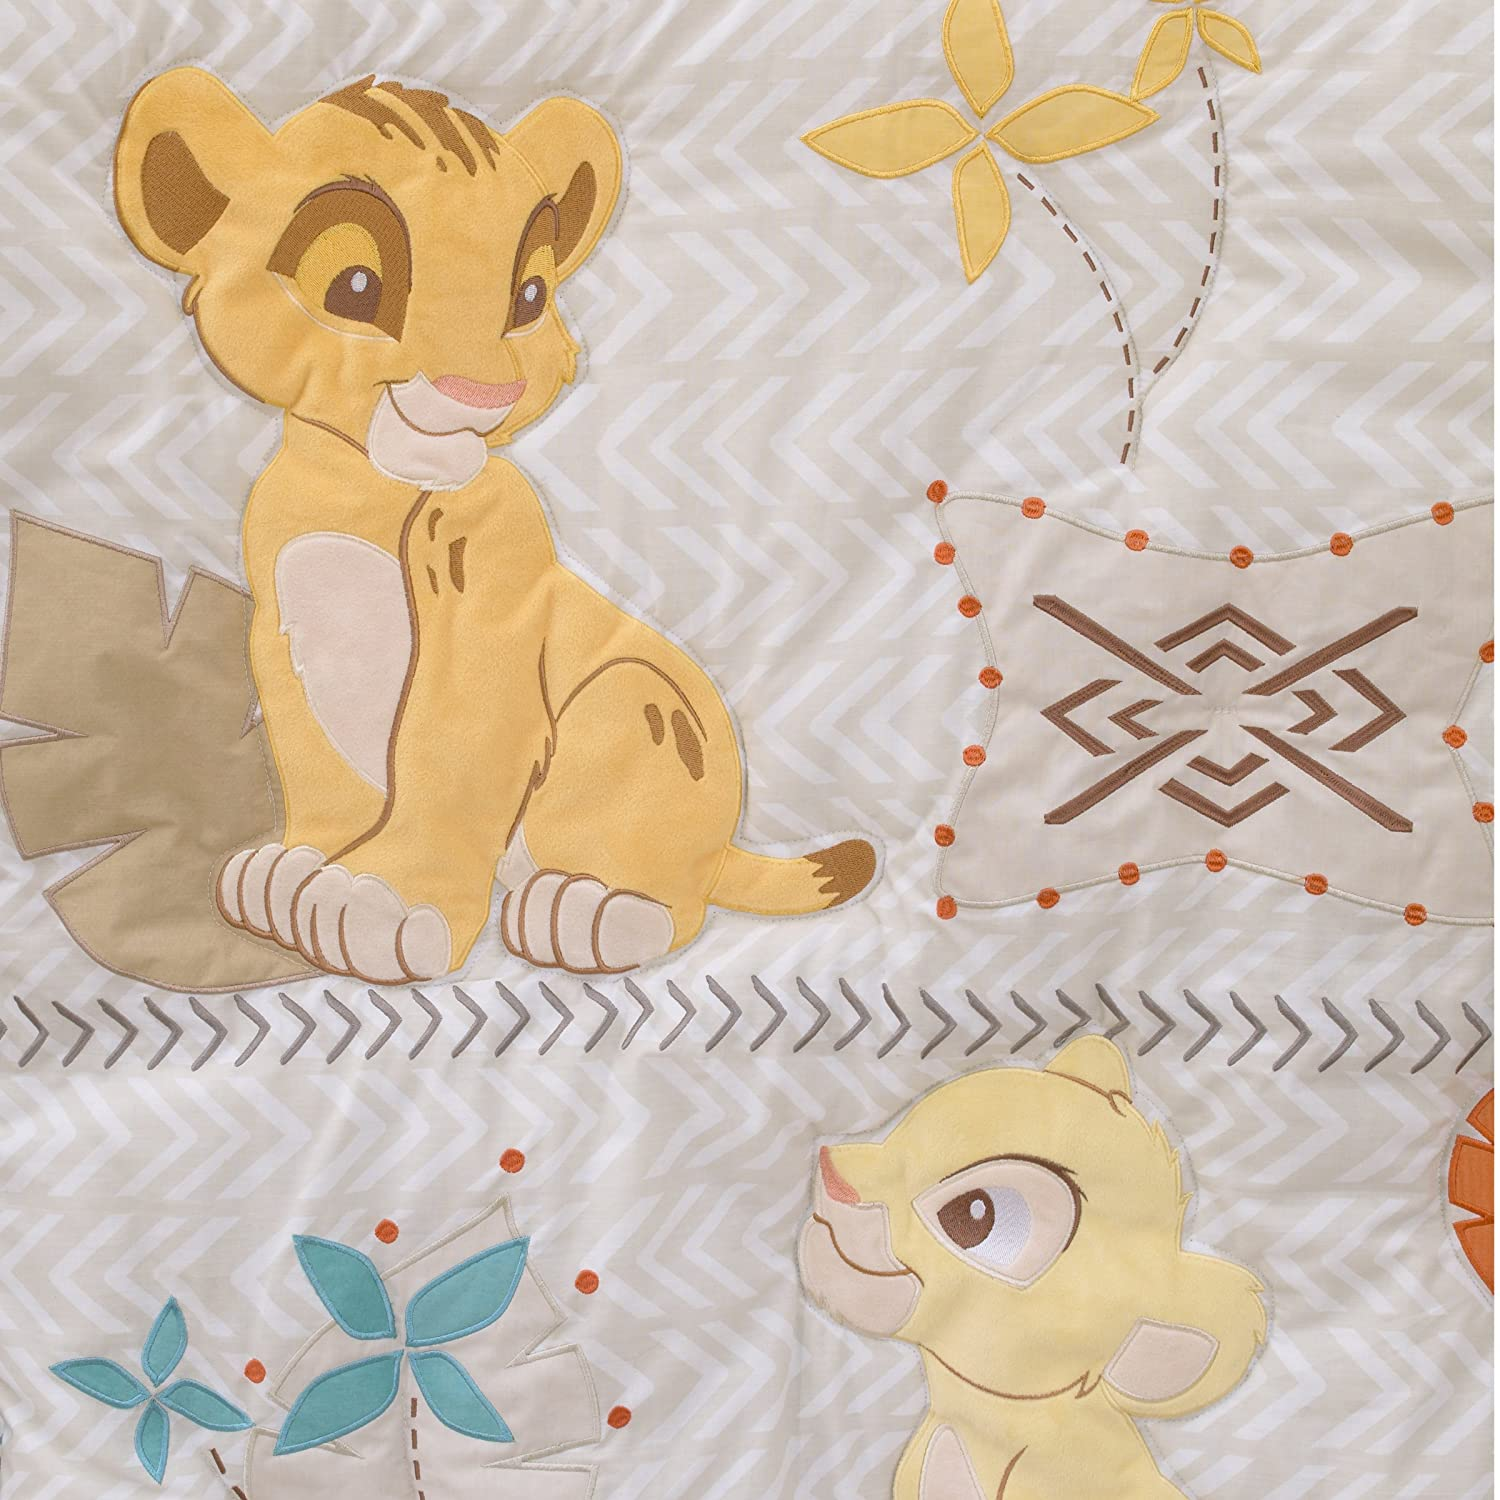 Disney Baby Lion King Cirle of Life Double Sided Velboa Baby Blanket